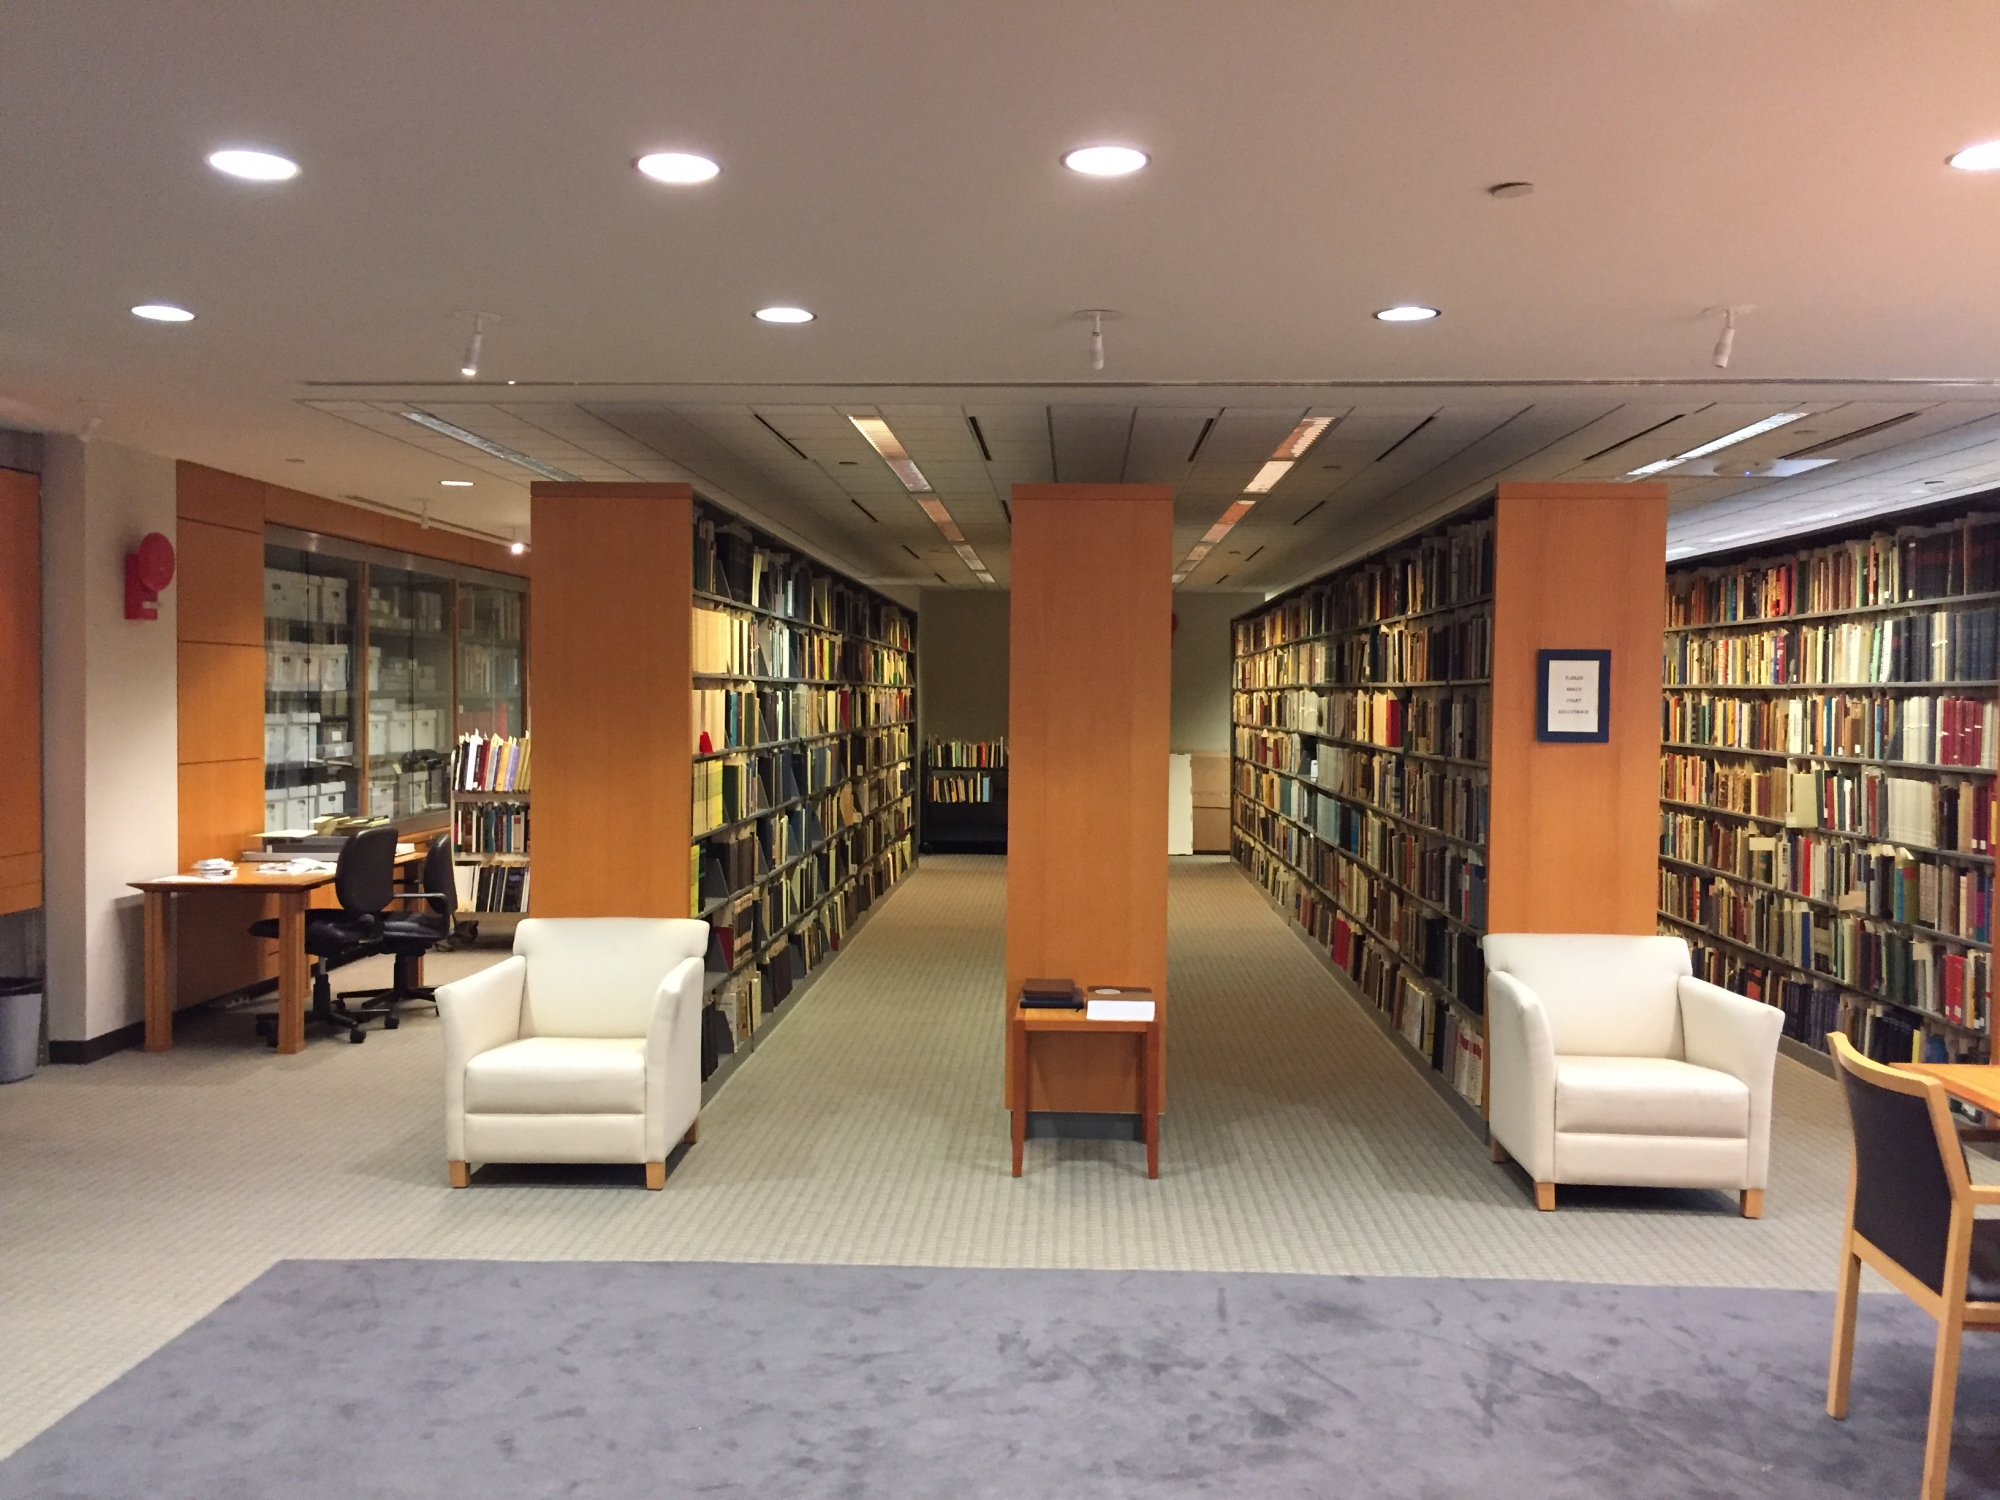 Gelman Library academic event space room 710 view of stacks